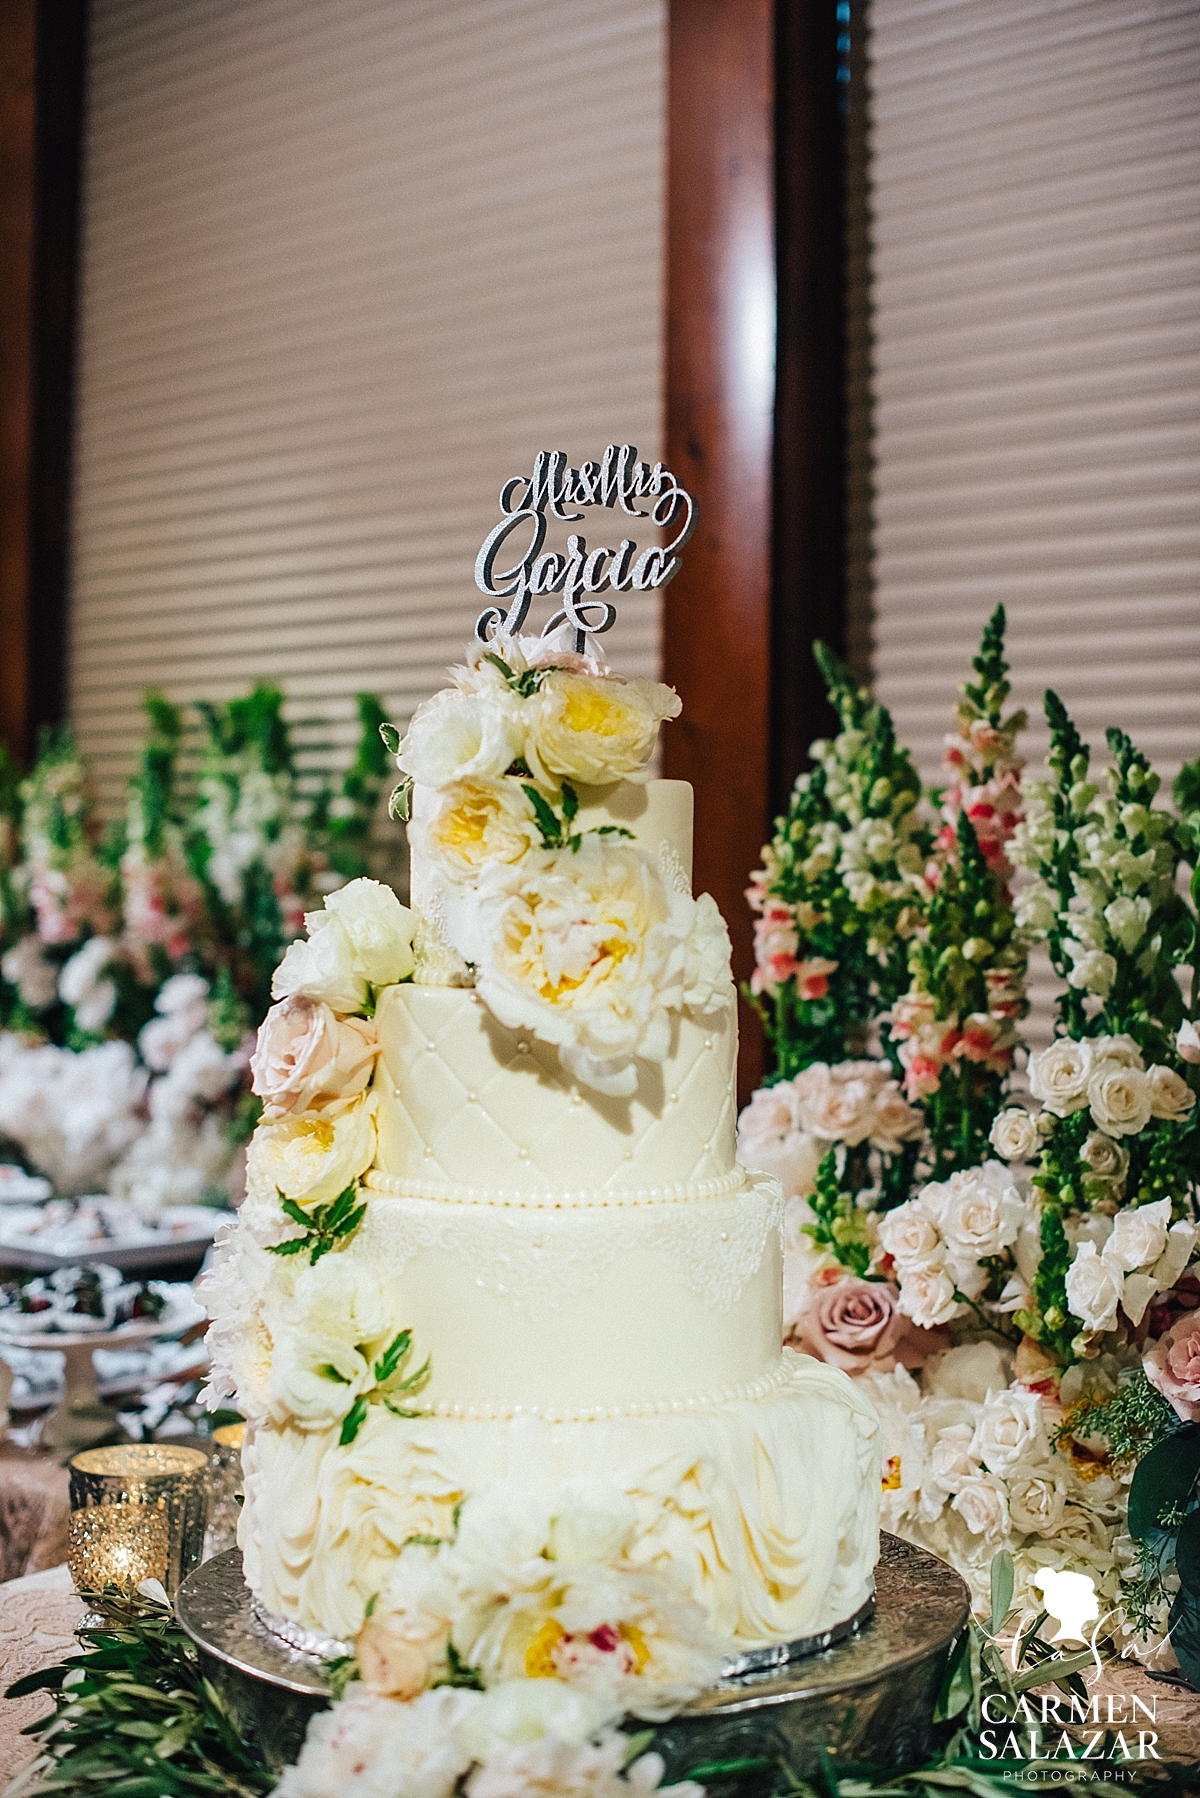 Gorgeous floral accent cake at Wine & Roses reception - Carmen Salazar